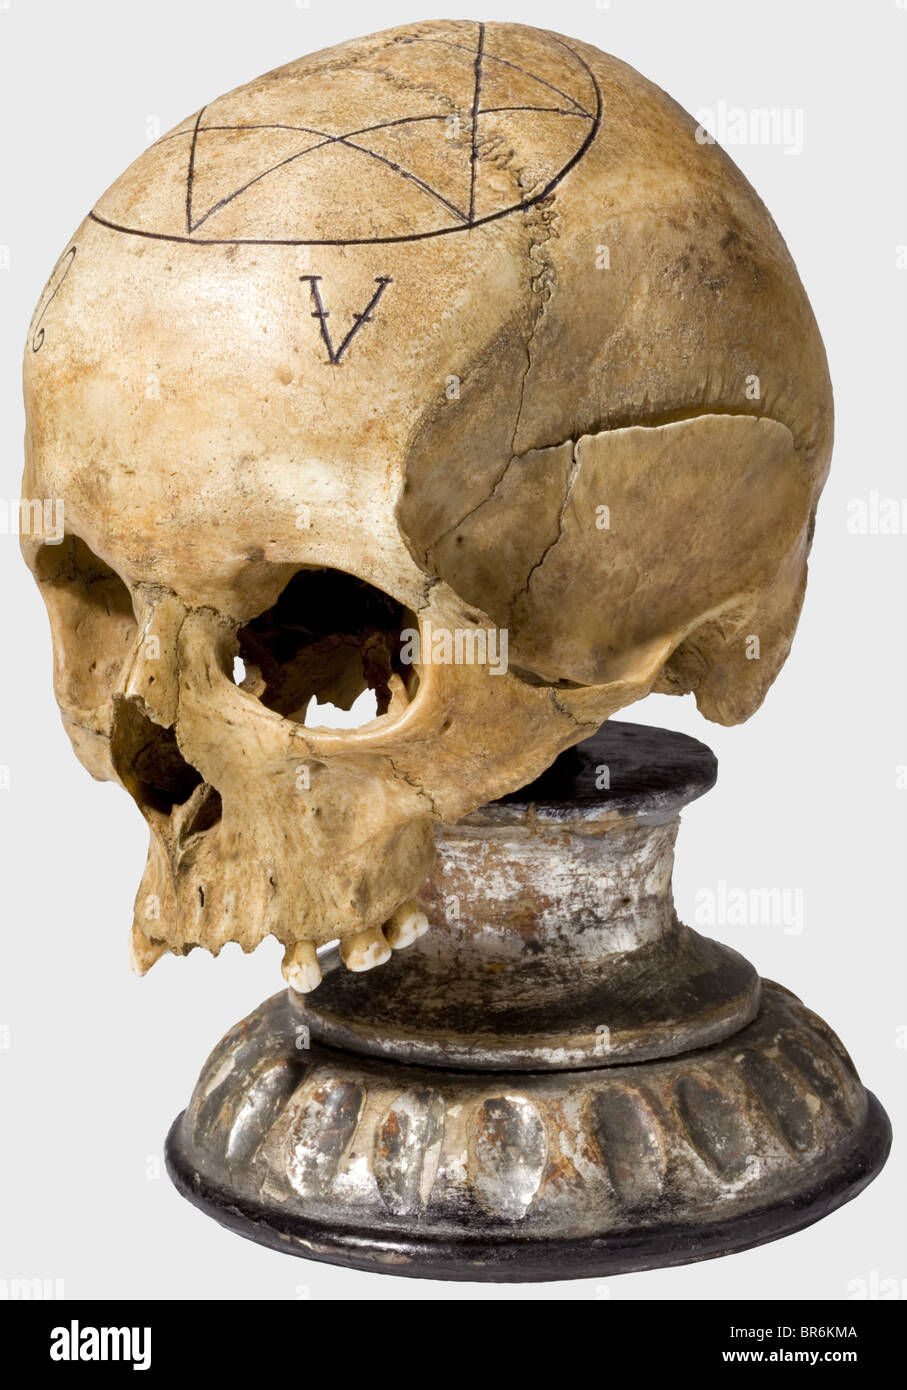 A ceremonial plumb bob and skull of a freemason lodge, German, 19th century. Elaborately crafted, knobbed brass Stock Photo